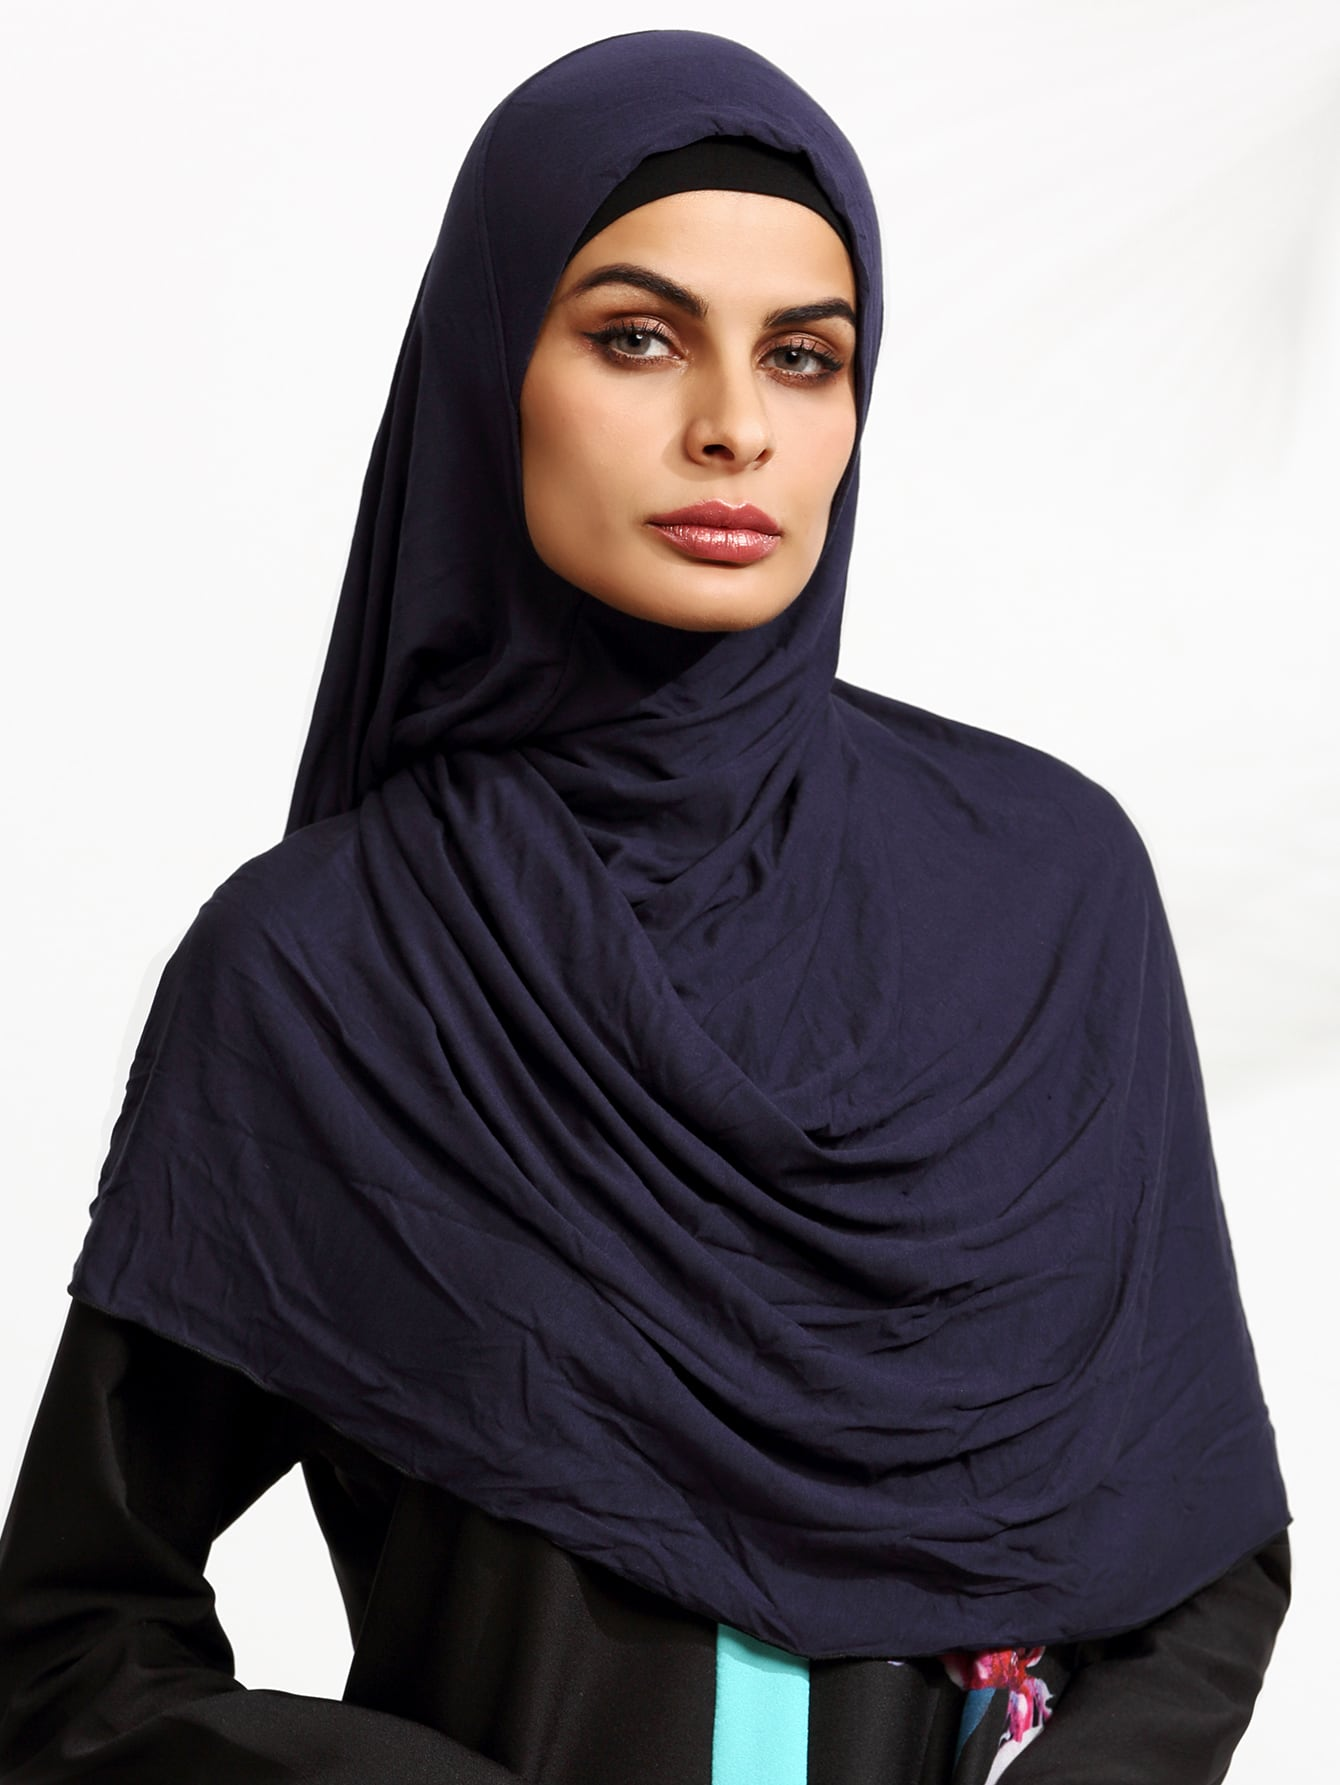 Navy Elegant Hijab ScarfNavy Elegant Hijab Scarf<br><br>color: Navy<br>size: None